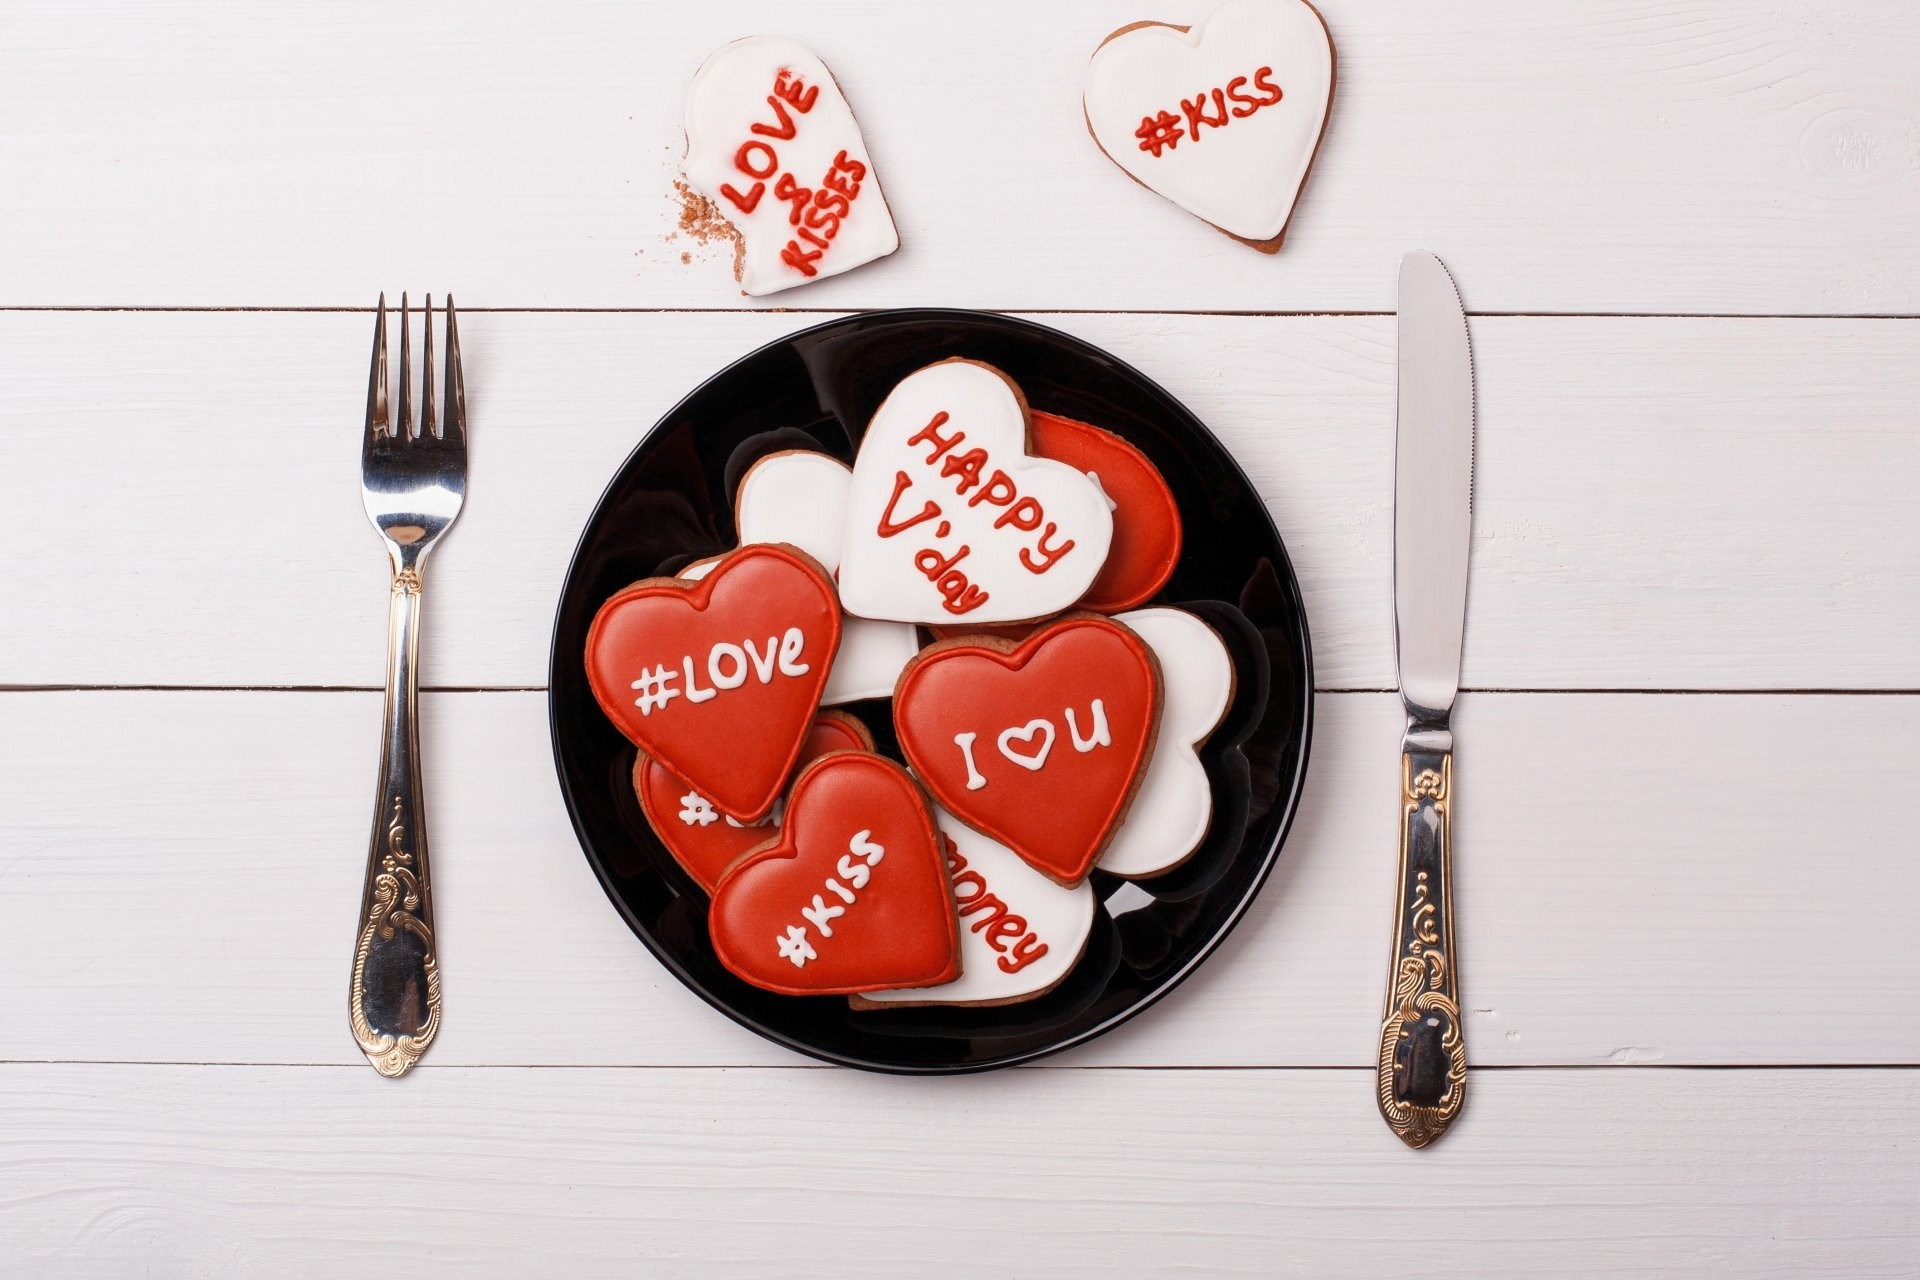 heart dish fork knife table tags valentine's day 14 february valentine's day  dinner breakfast.